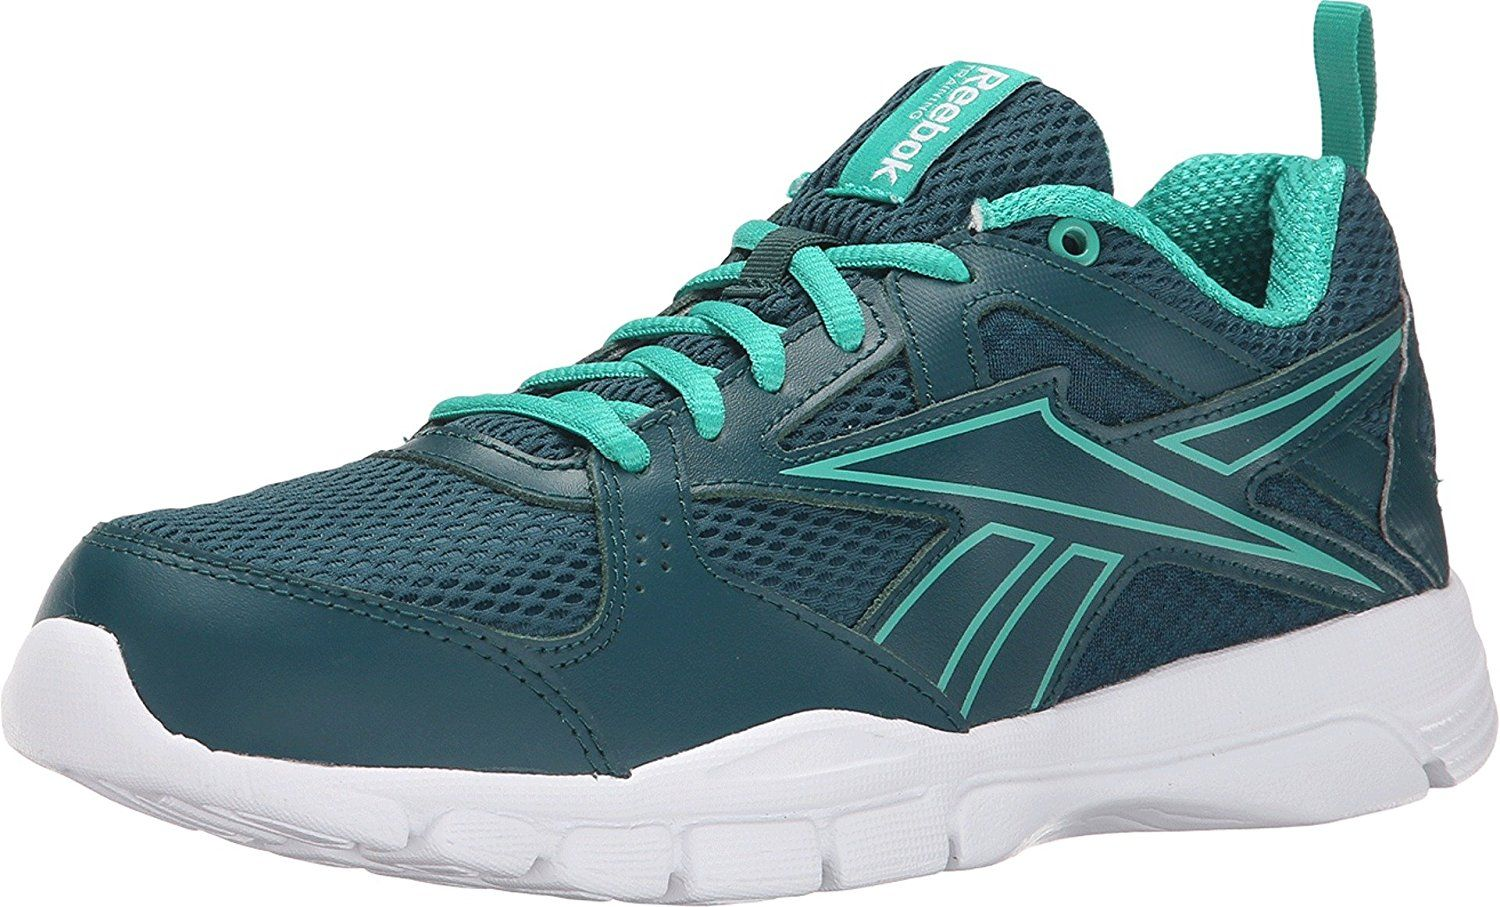 Womens Shoes Reebok Trainfusion 5.0 L MT Deep Teal/Glass Green/White